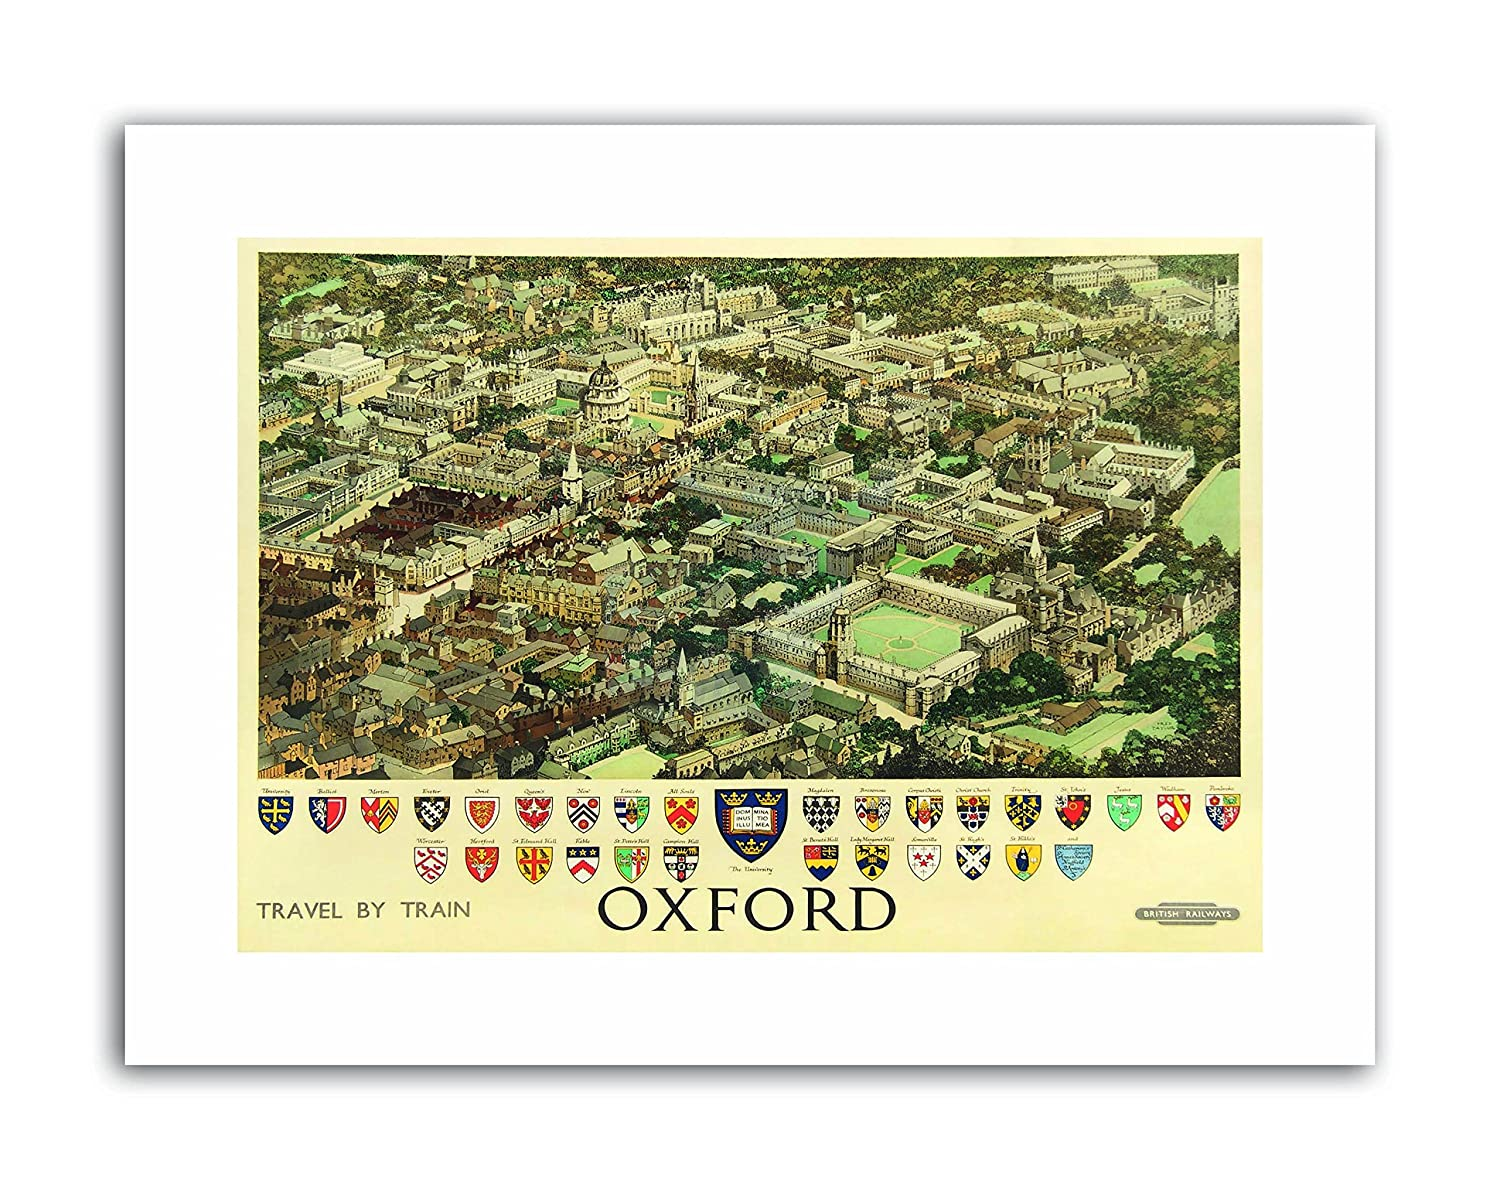 OXFORD ENGLAND BRITISH RAILWAYS CREST COAT OF ARMS HERALDRY Canvas art Prints